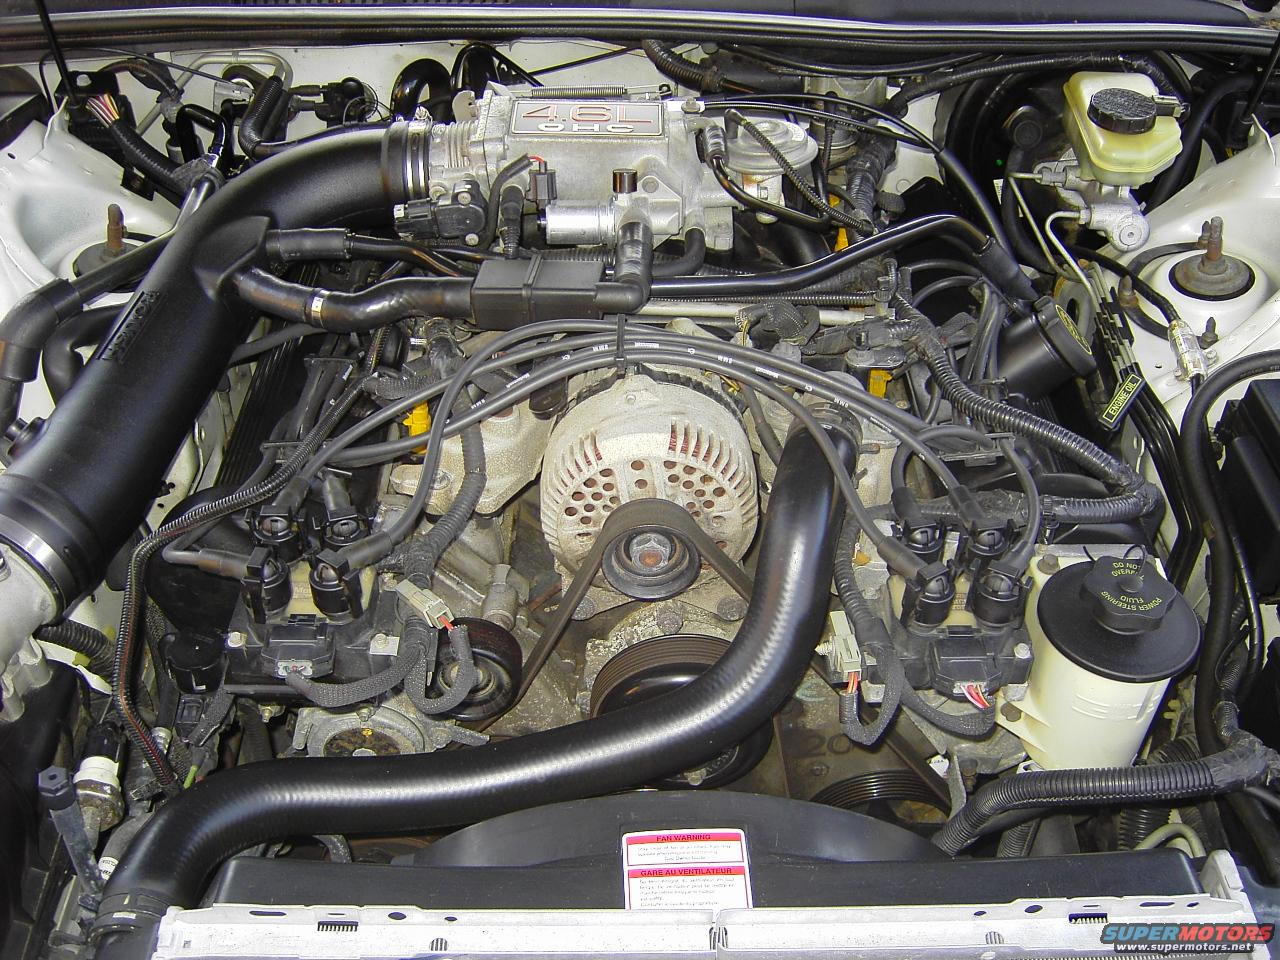 Engine 64574927 additionally 313761 1 moreover Exterior 54125802 together with Interior 48664875 also Dashboard 41935910. on 2001 town car engine